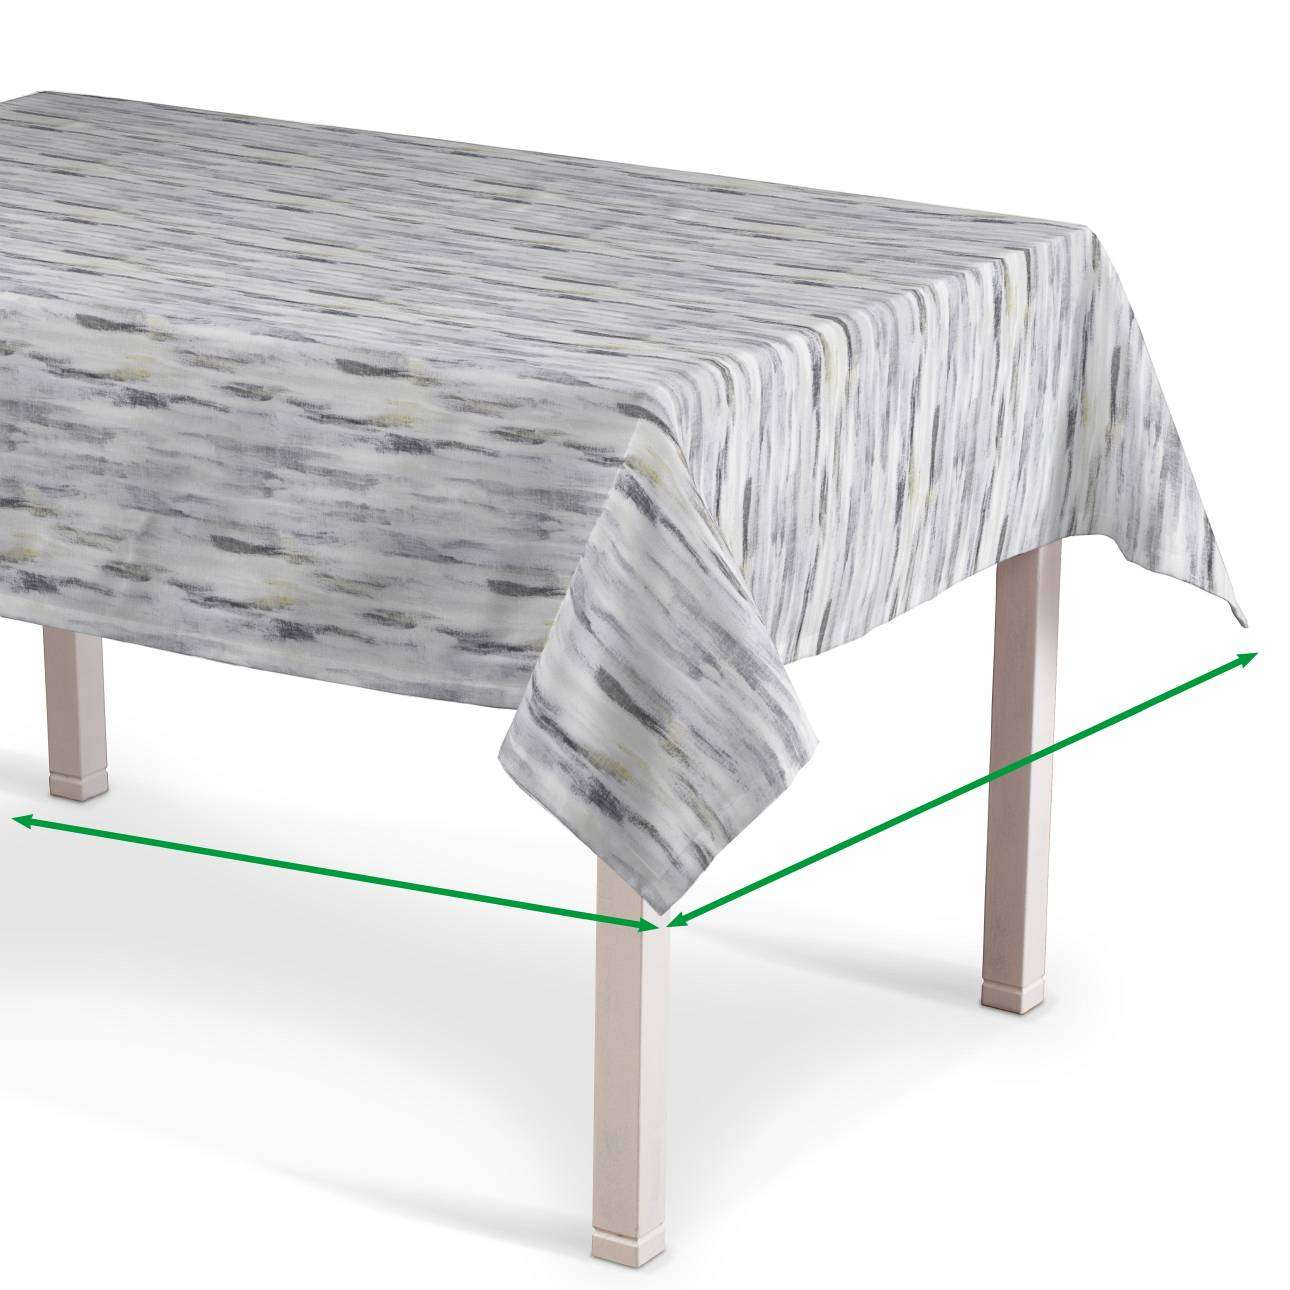 Rectangular tablecloth in collection Aquarelle, fabric: 140-66